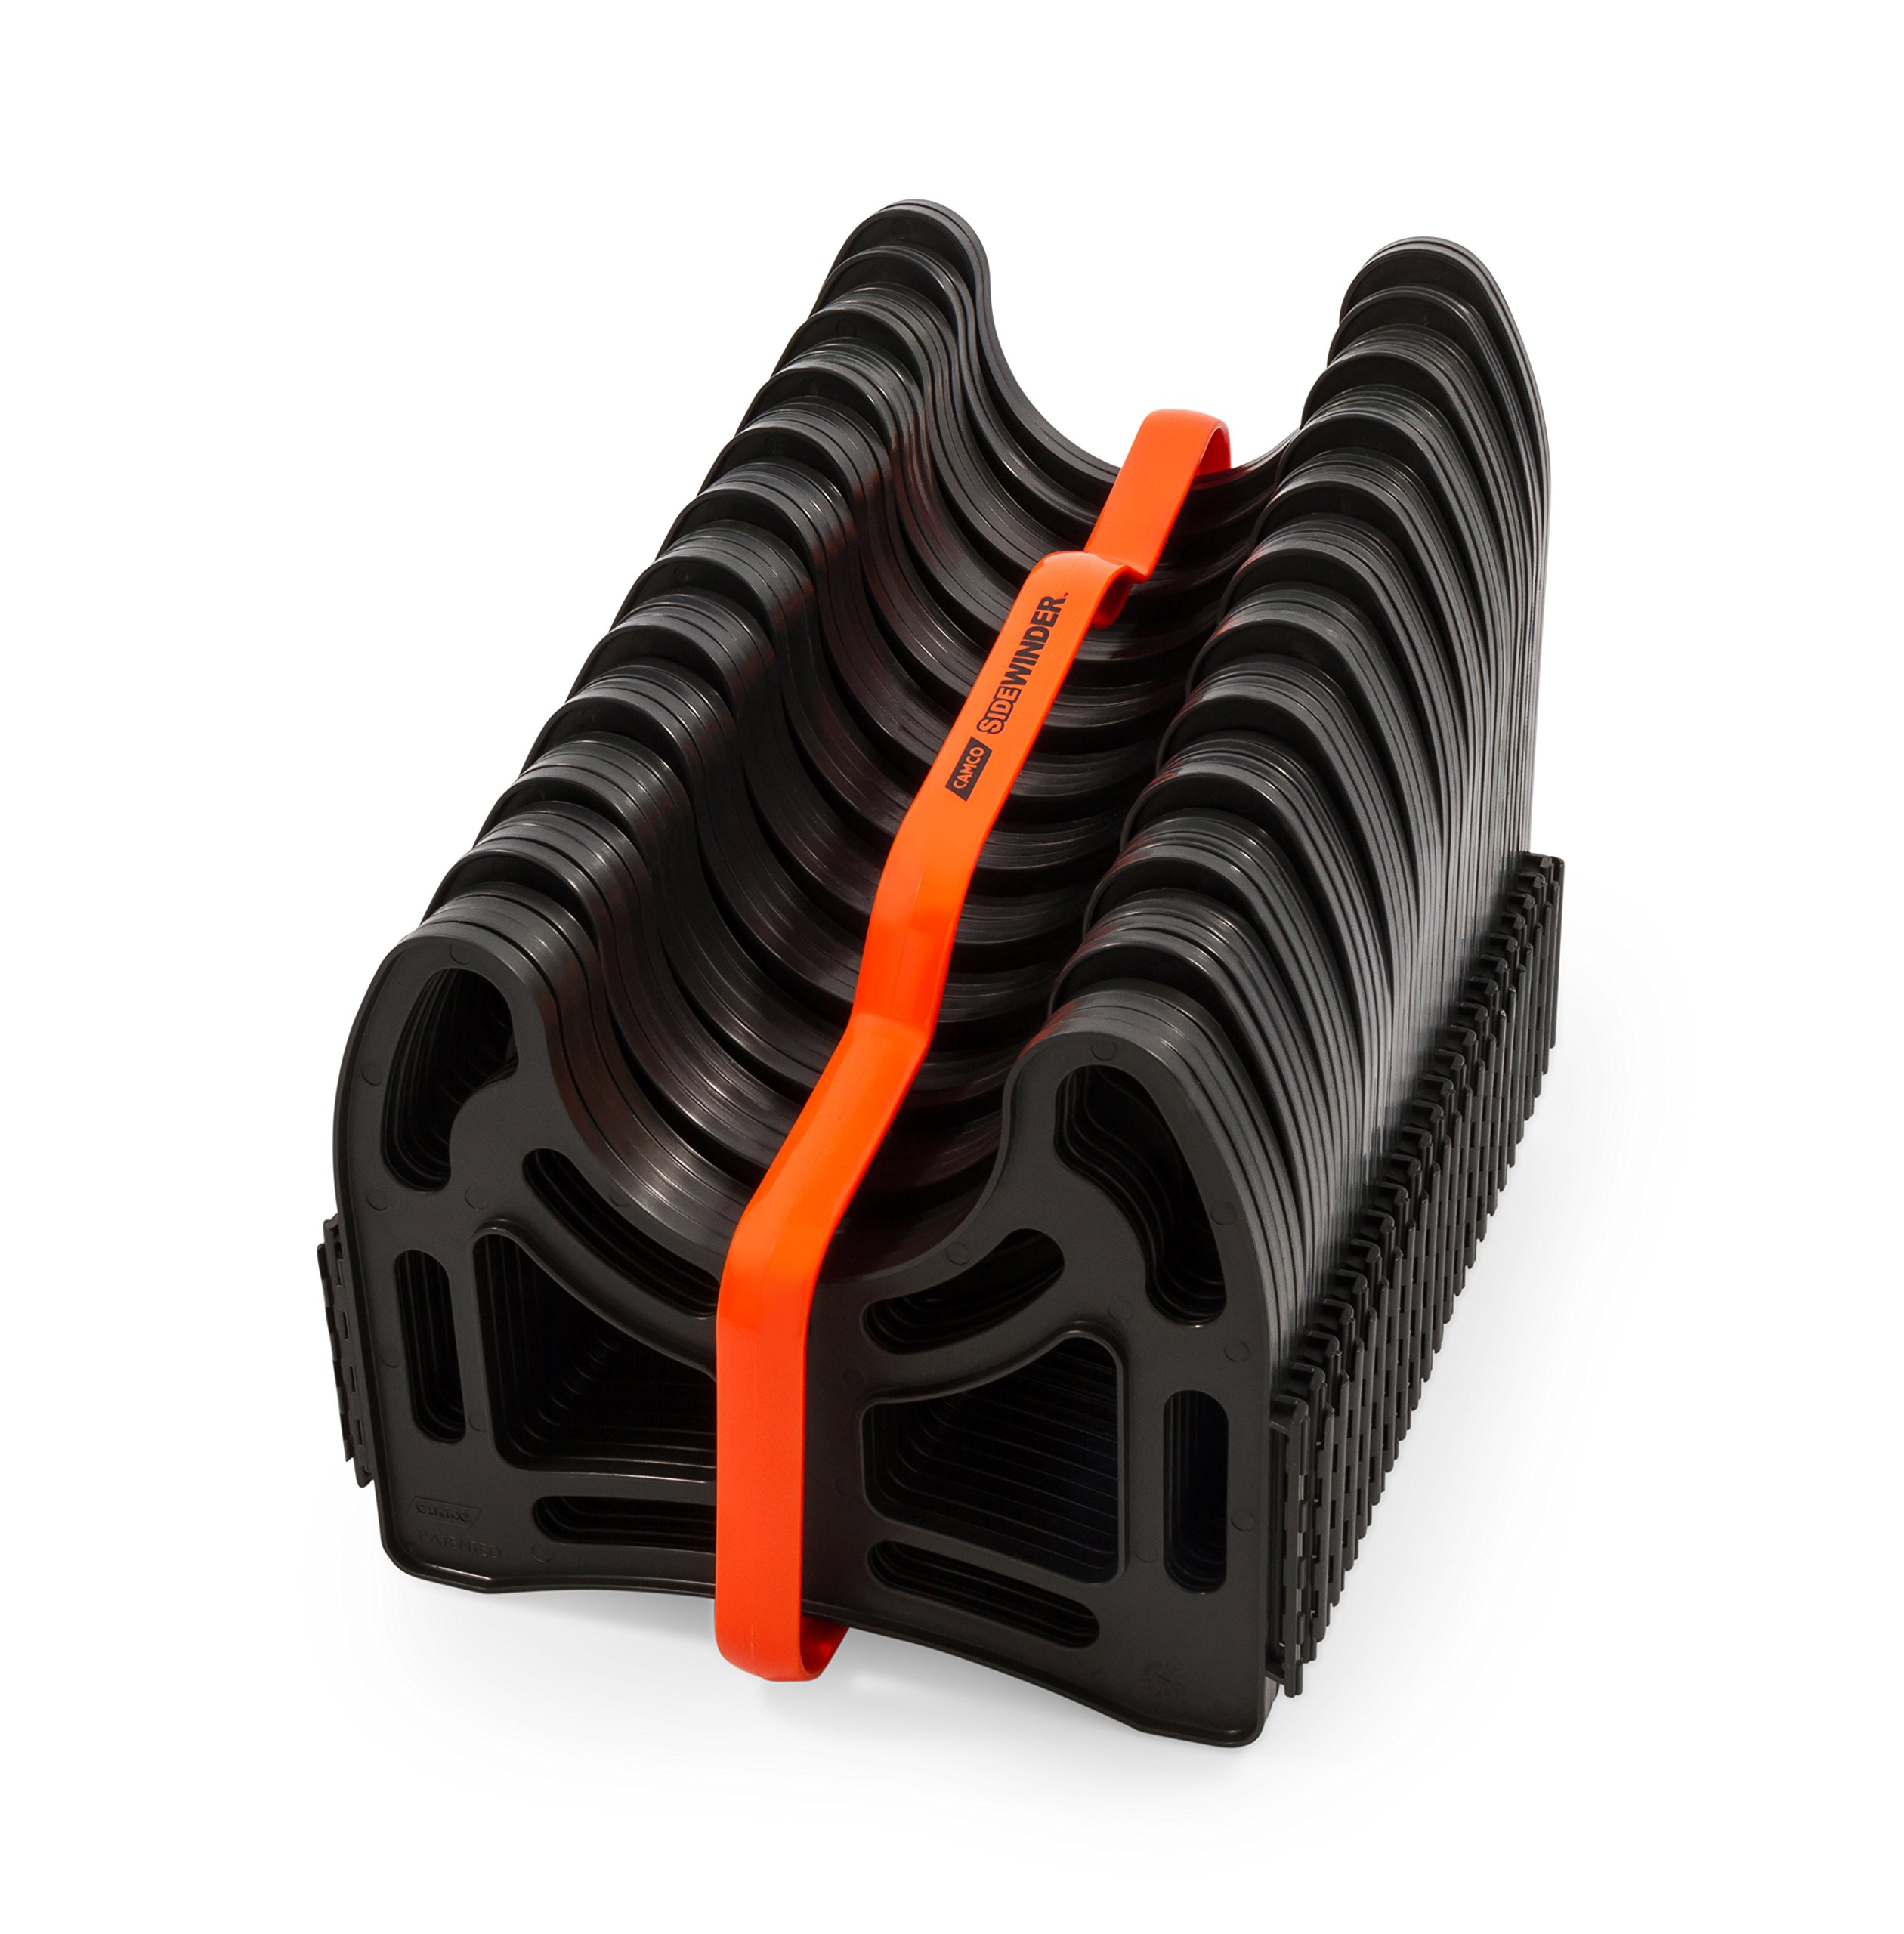 Camco 20ft Sidewinder RV Sewer Hose Support, Made From Sturdy Lightweight Plastic, Won't Creep Closed, Holds Hoses In Place - No Need For Straps (43051) by Camco